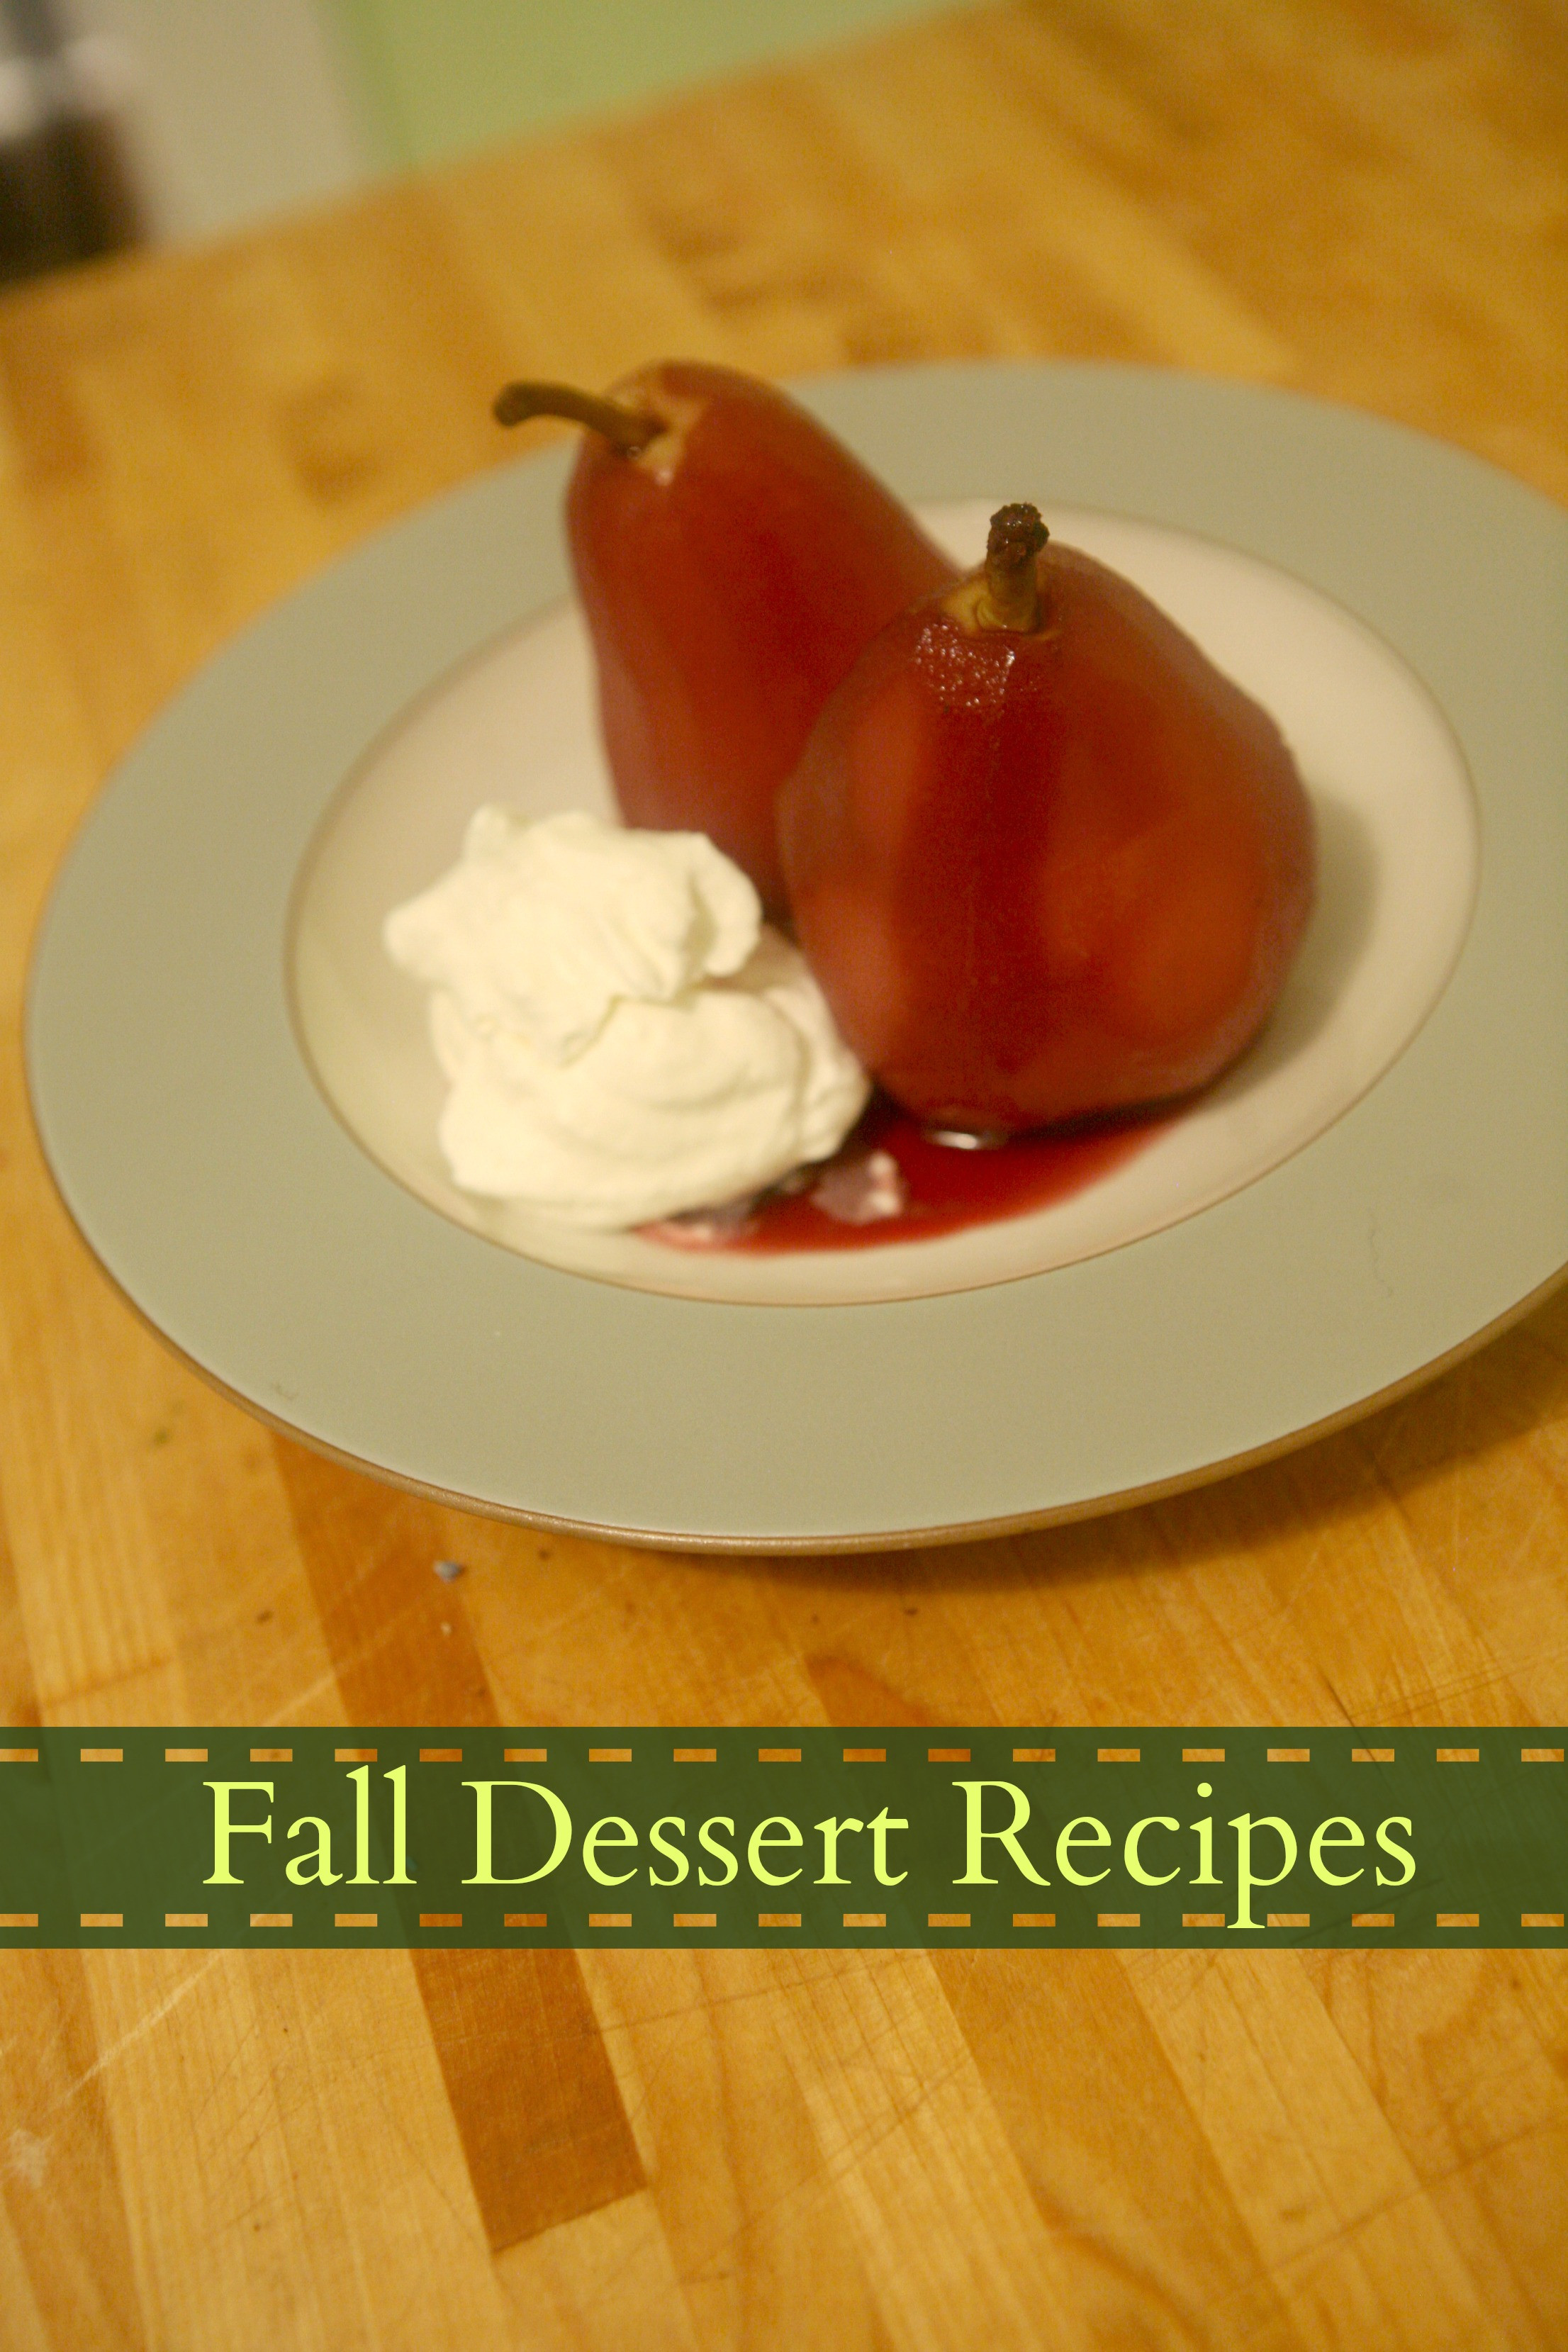 Fall Dessert Recipes  Fall Dessert Recipes Pears poached in red wine Gluten